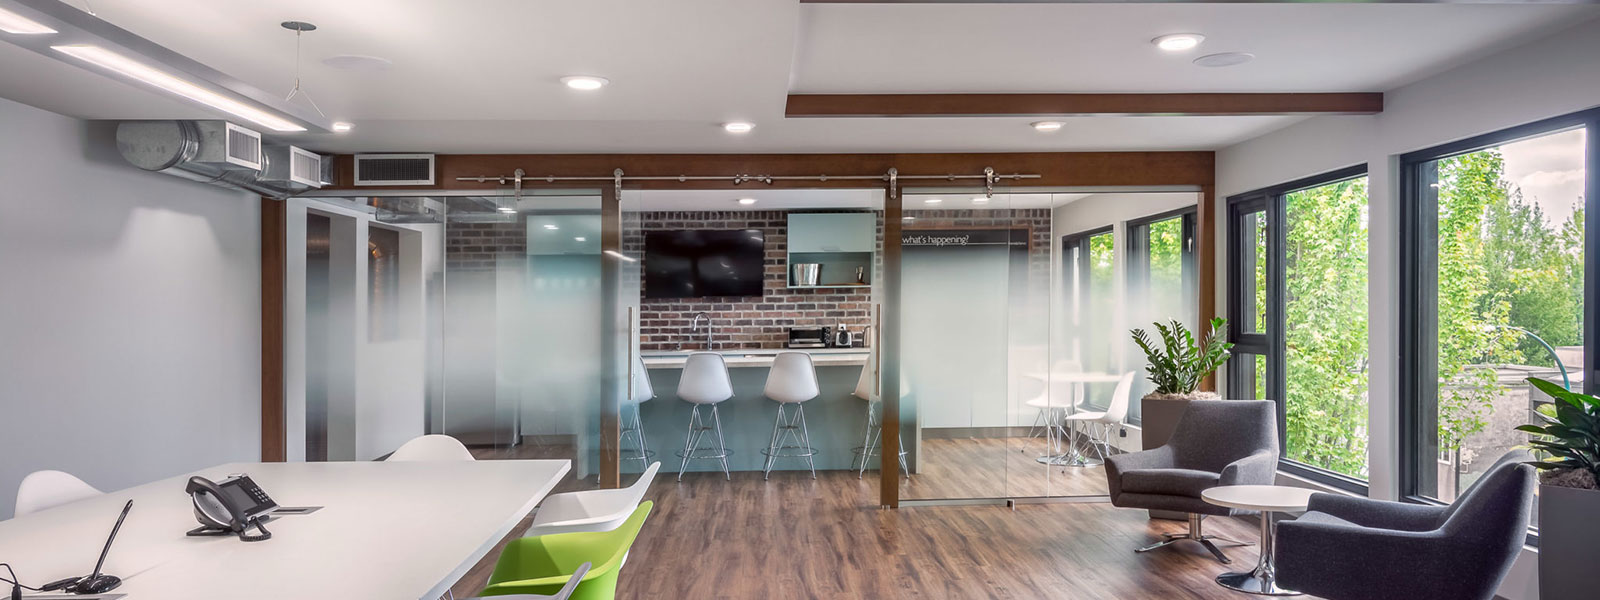 Commercial Interior Designs For Cutting-Edge Offices